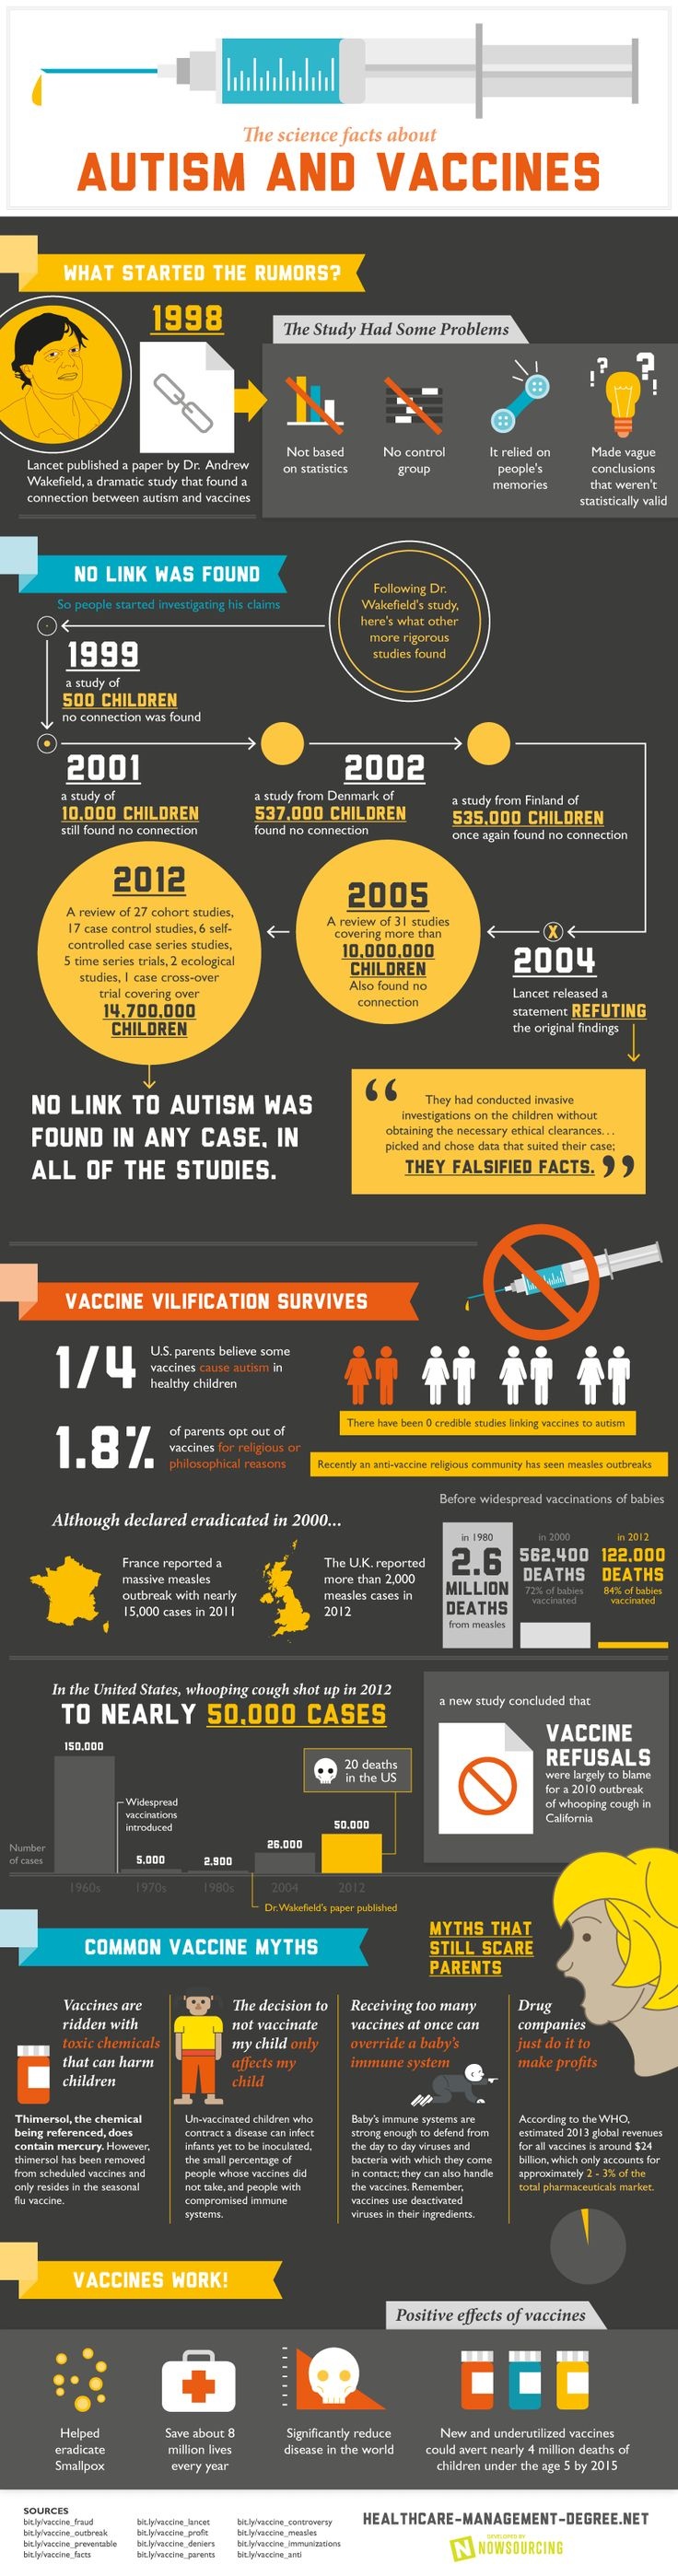 It Took Studying 25,782,500 Kids To Begin To Undo The Damage Caused By 1 Doctor. Vaccinate your kids, people. #vaccinate